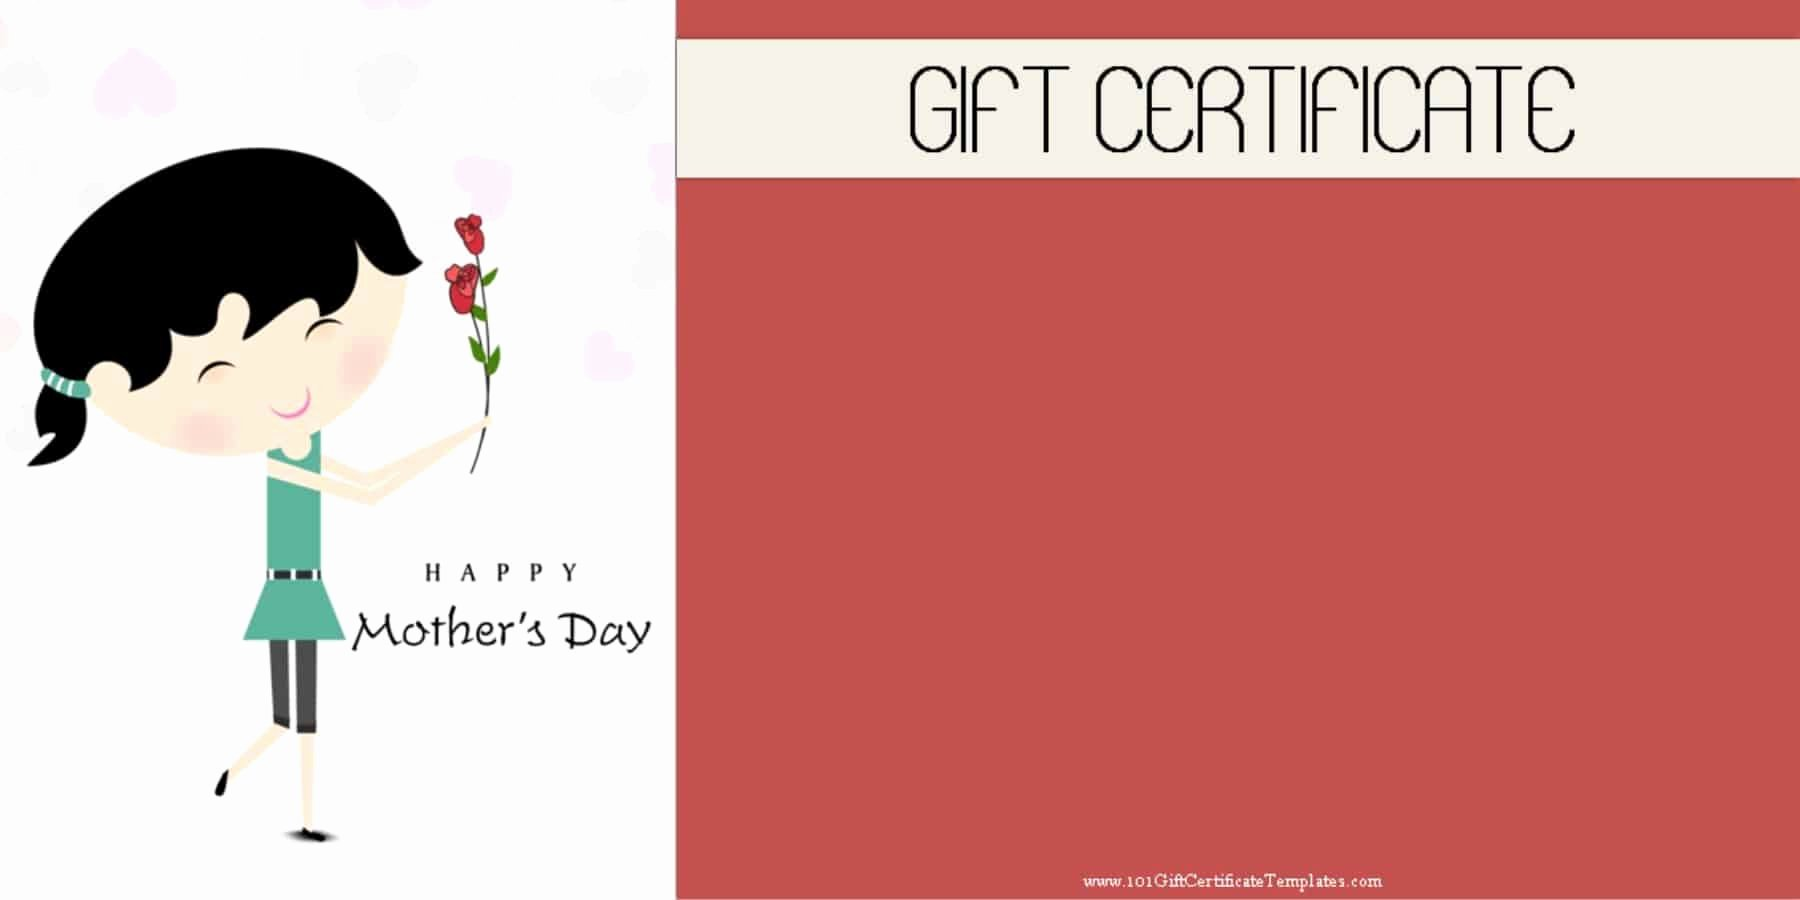 Mother's Day Gift Certificate Template Free Download Best Of Mother S Day Gift Certificate Templates